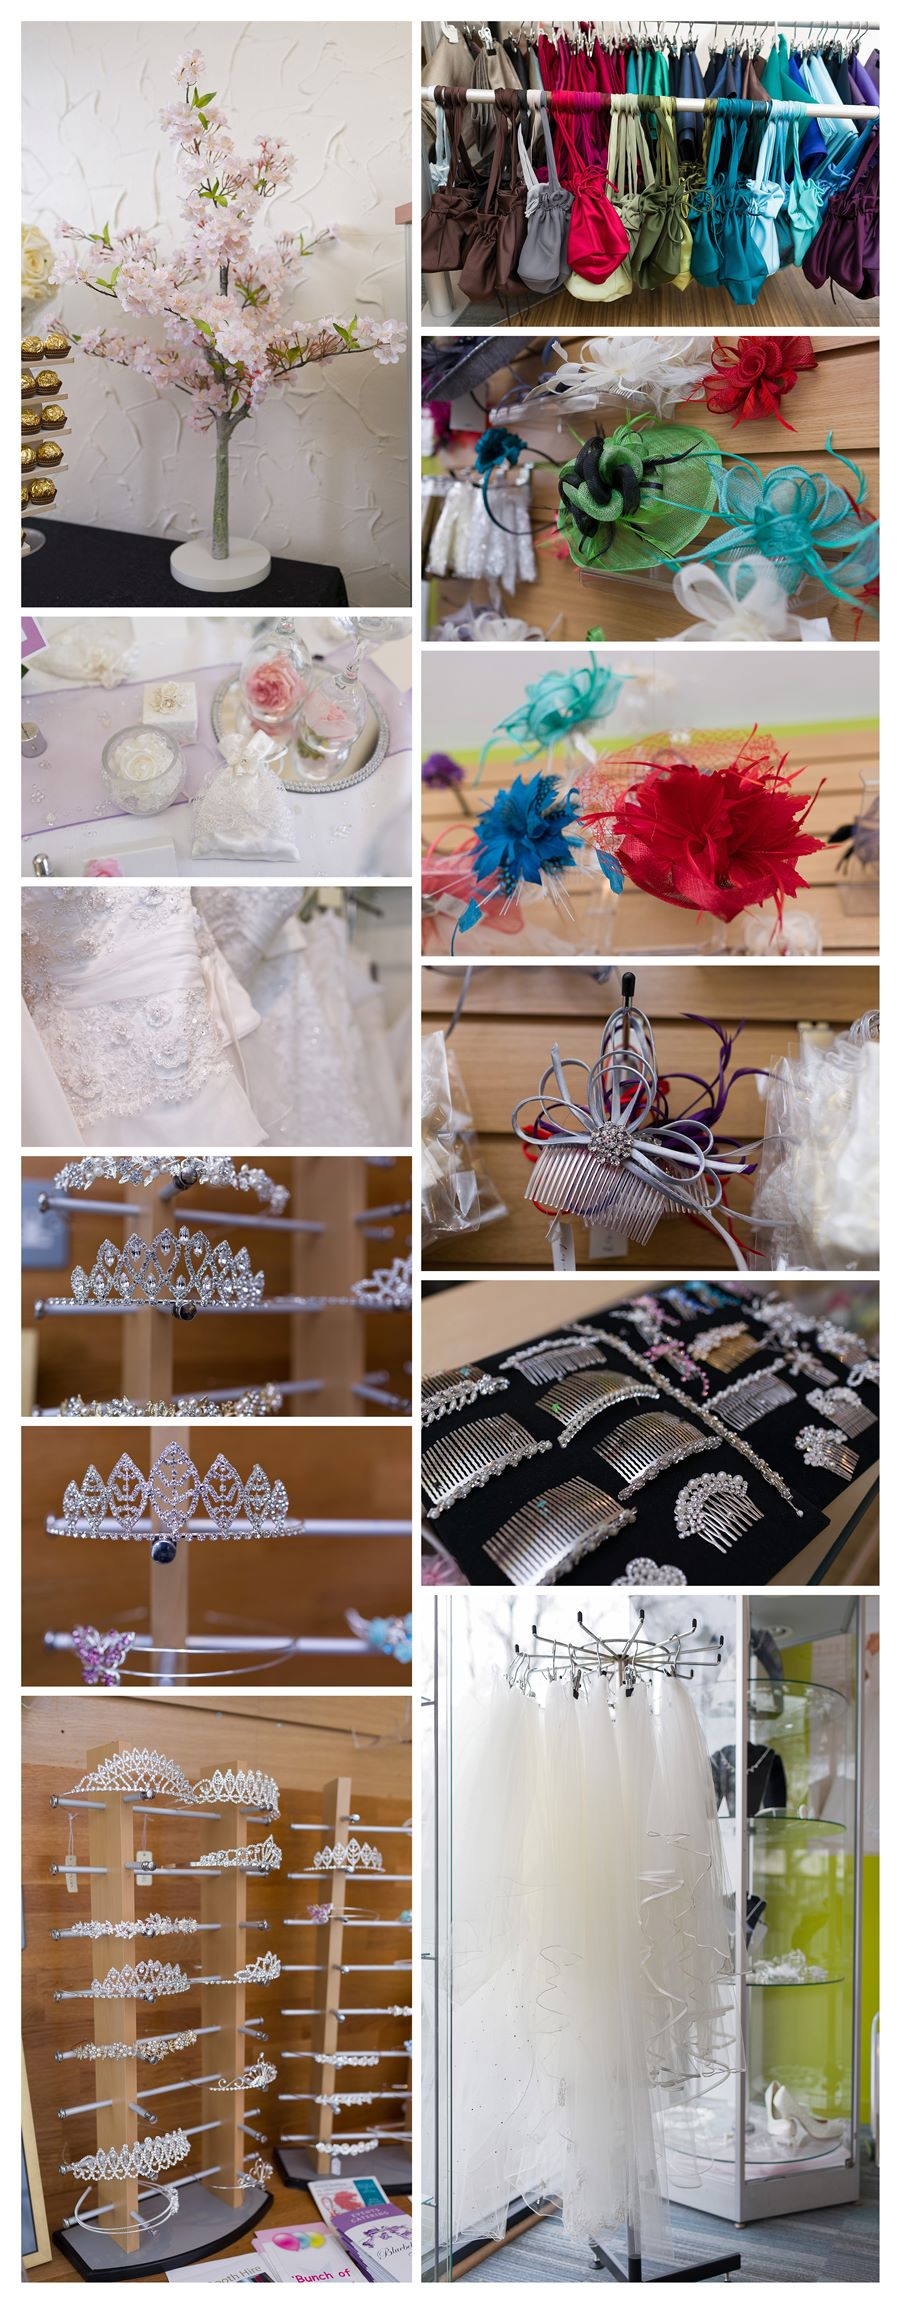 Selby weddings, wedding shops in Selby, wedding dresses Selby